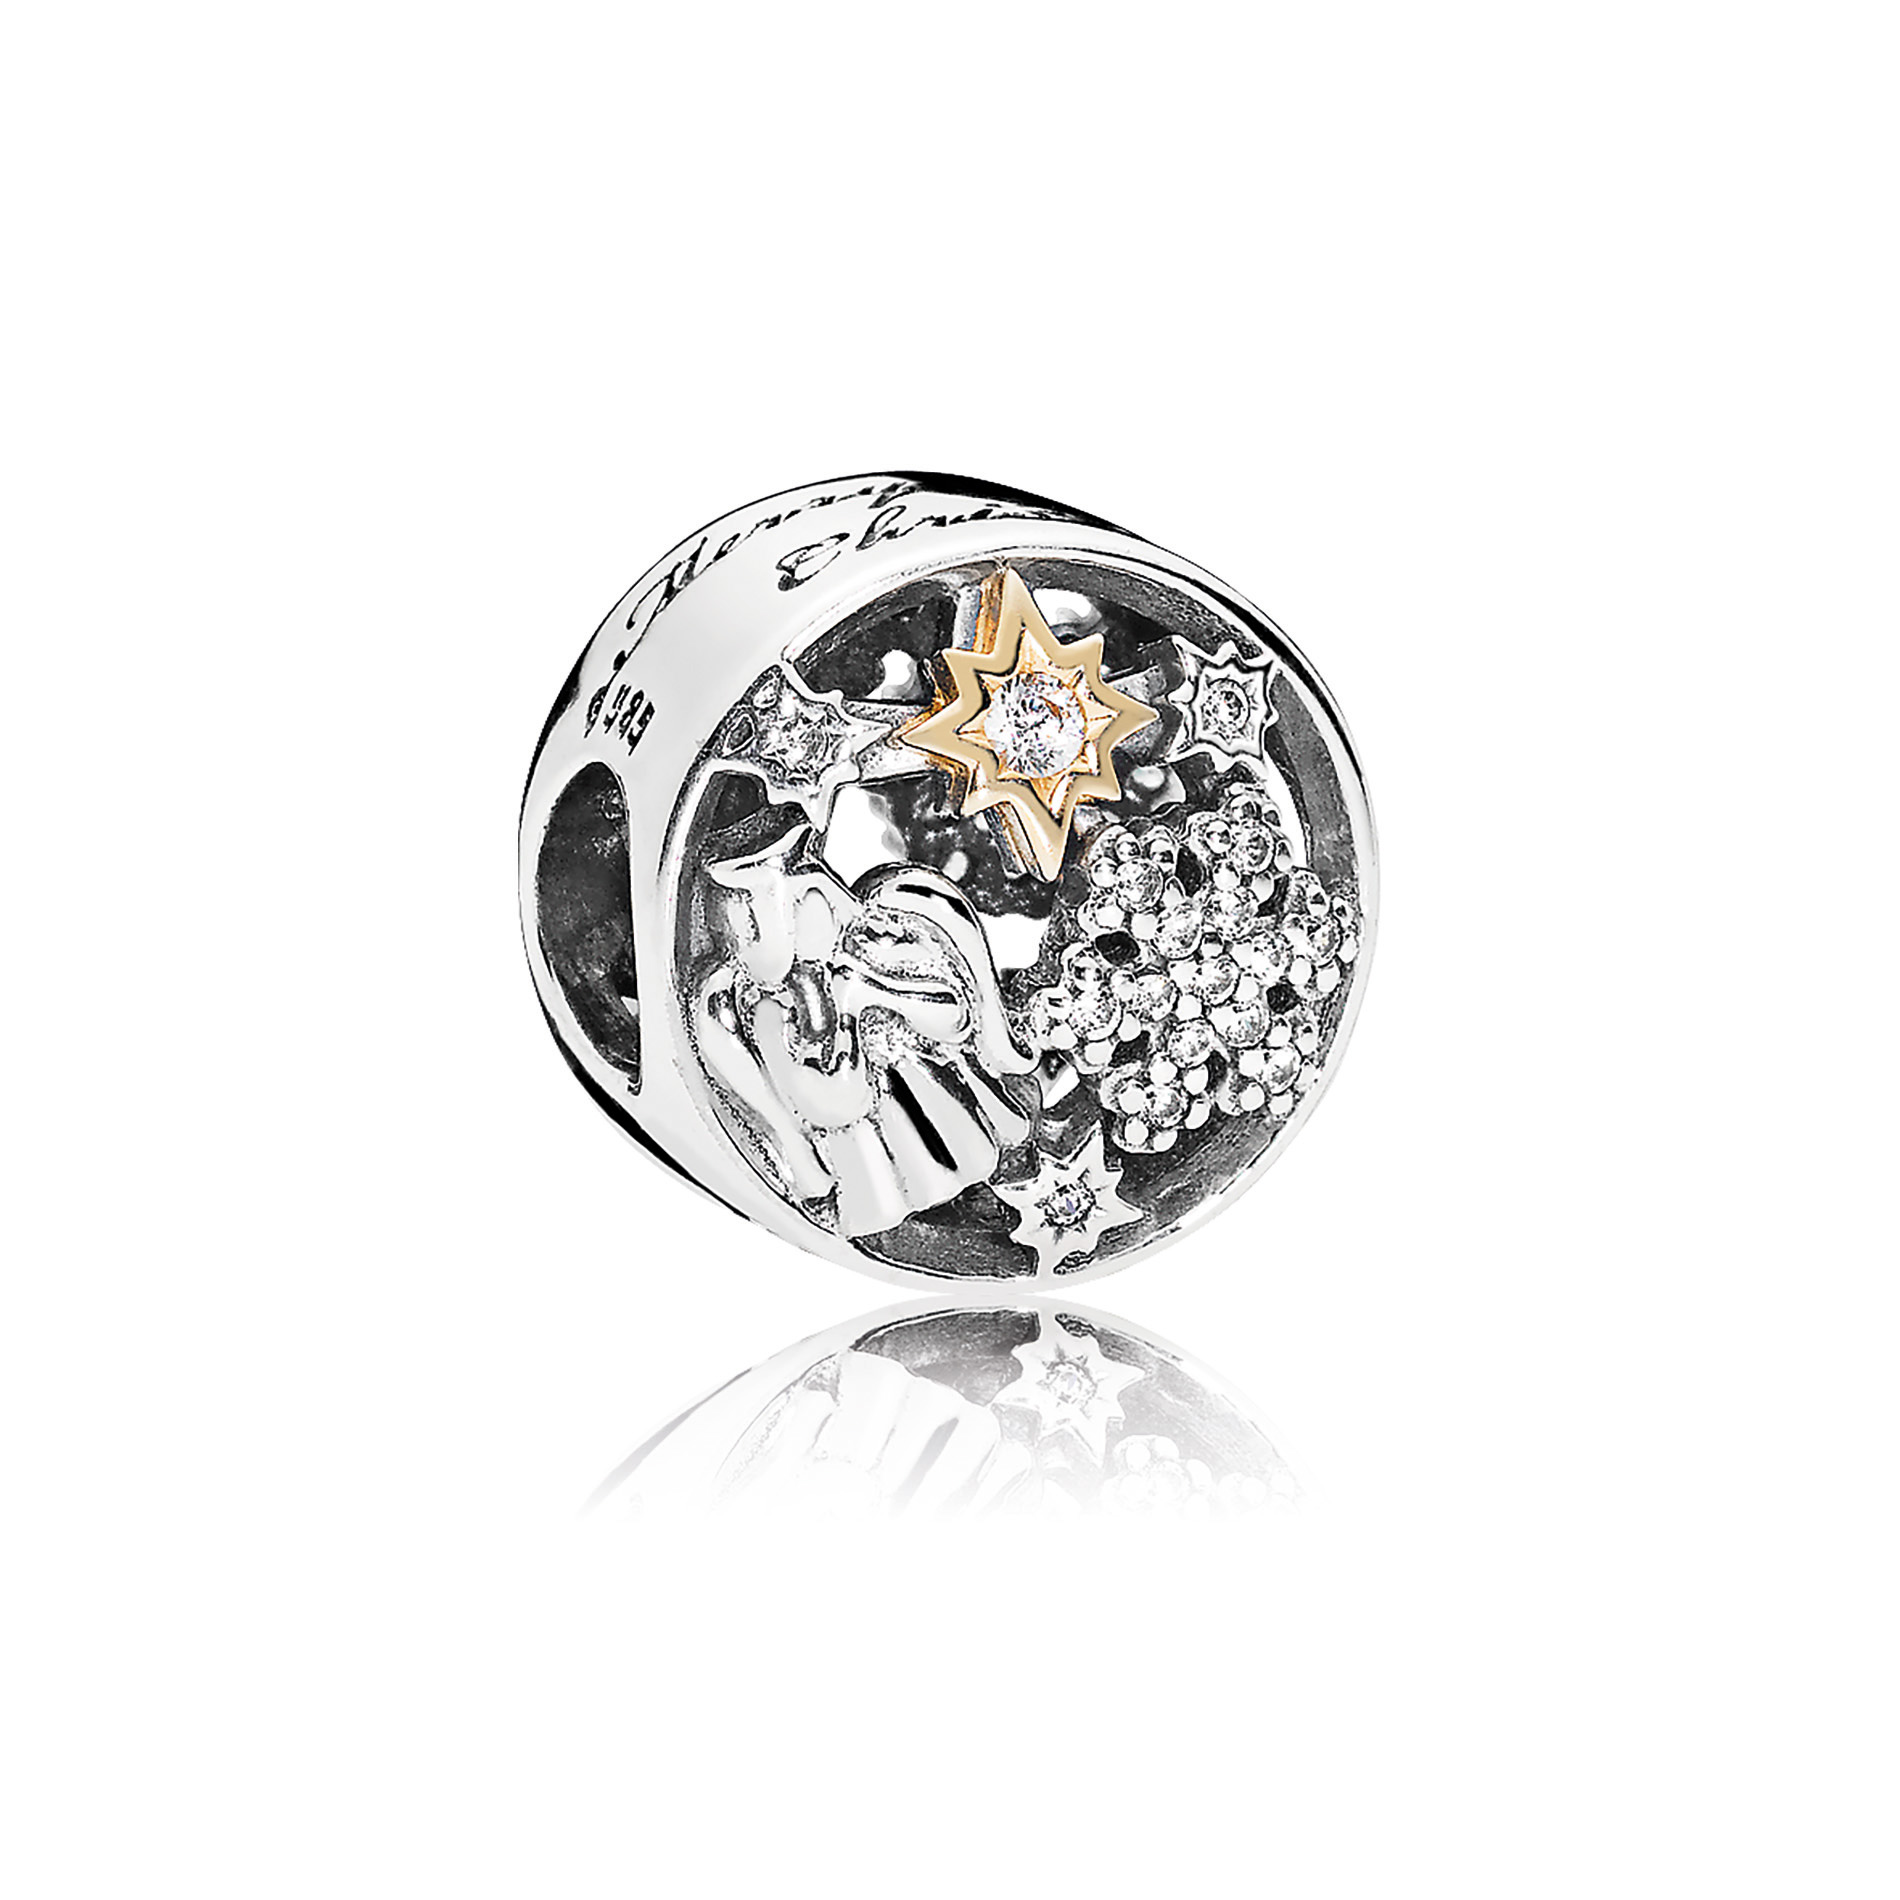 The Celestial Wonder charm from the Winter collection will sparkle for all this year